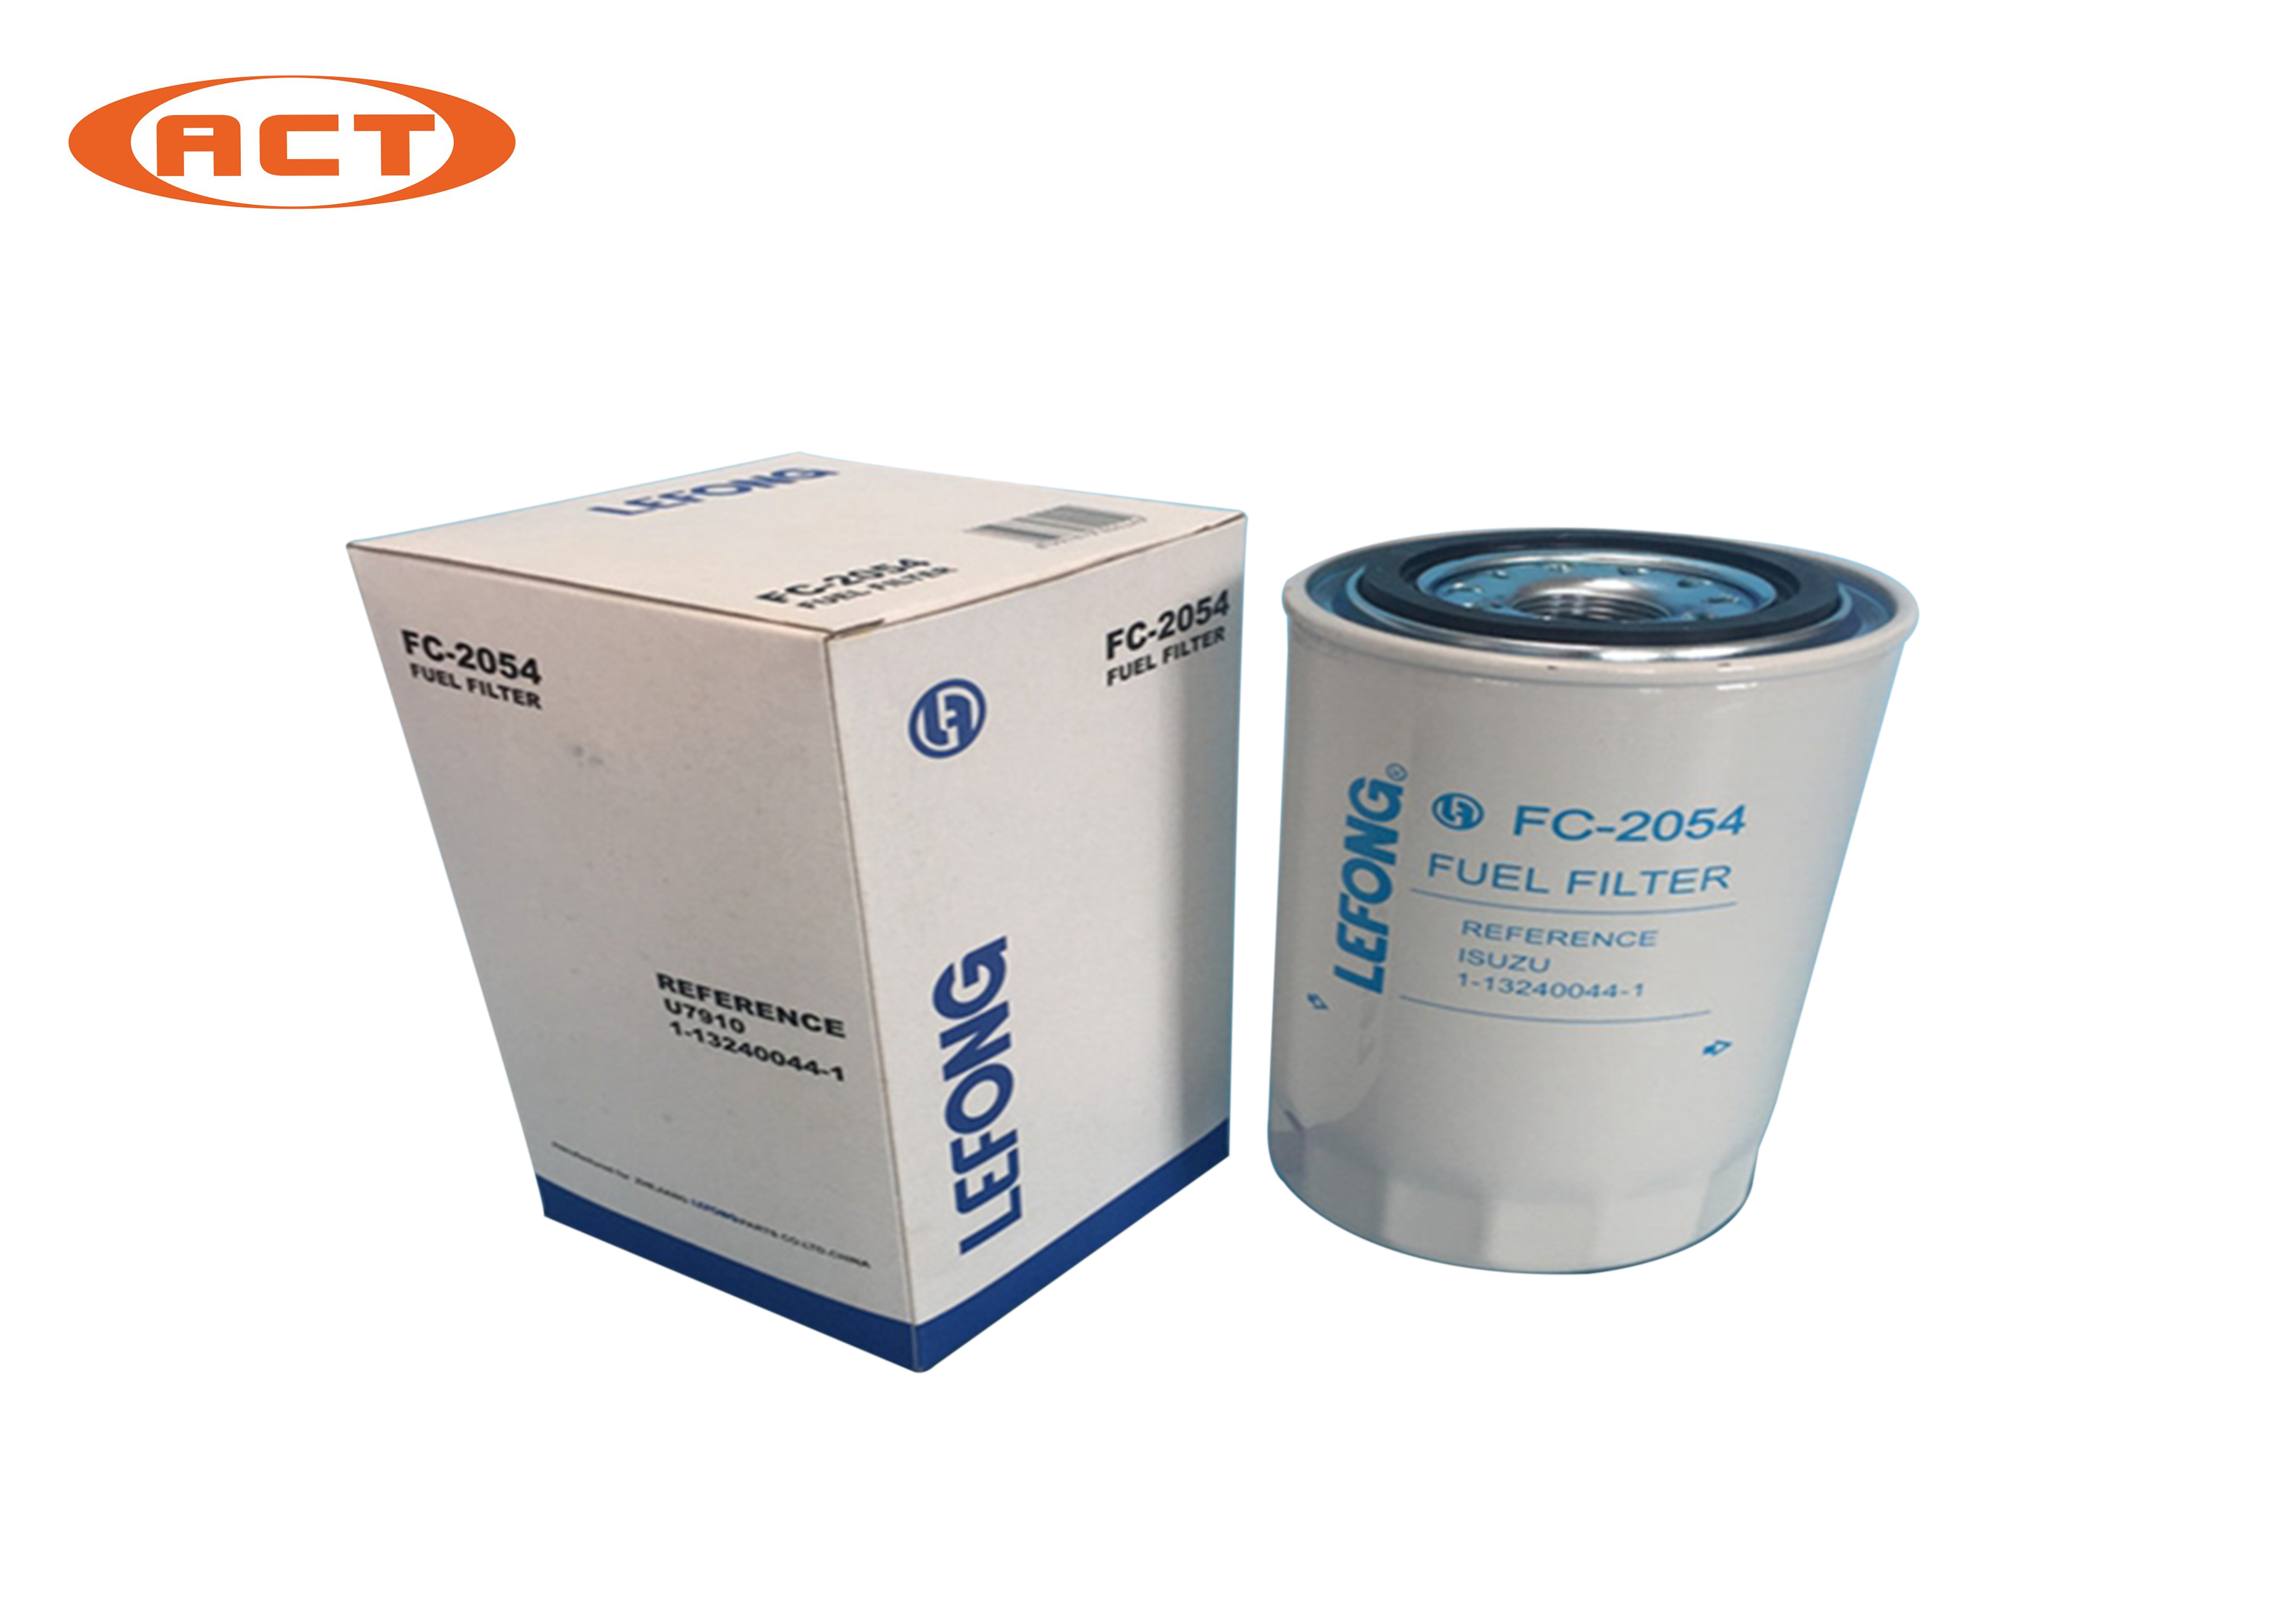 High Speed Steel Material Hitachi Filters Fuel U7910 1 Isuzu Q6 What Is The Lead Time A For This Product Normally 3 Days3 Days And Calculated From Day We Receive Your Deposit